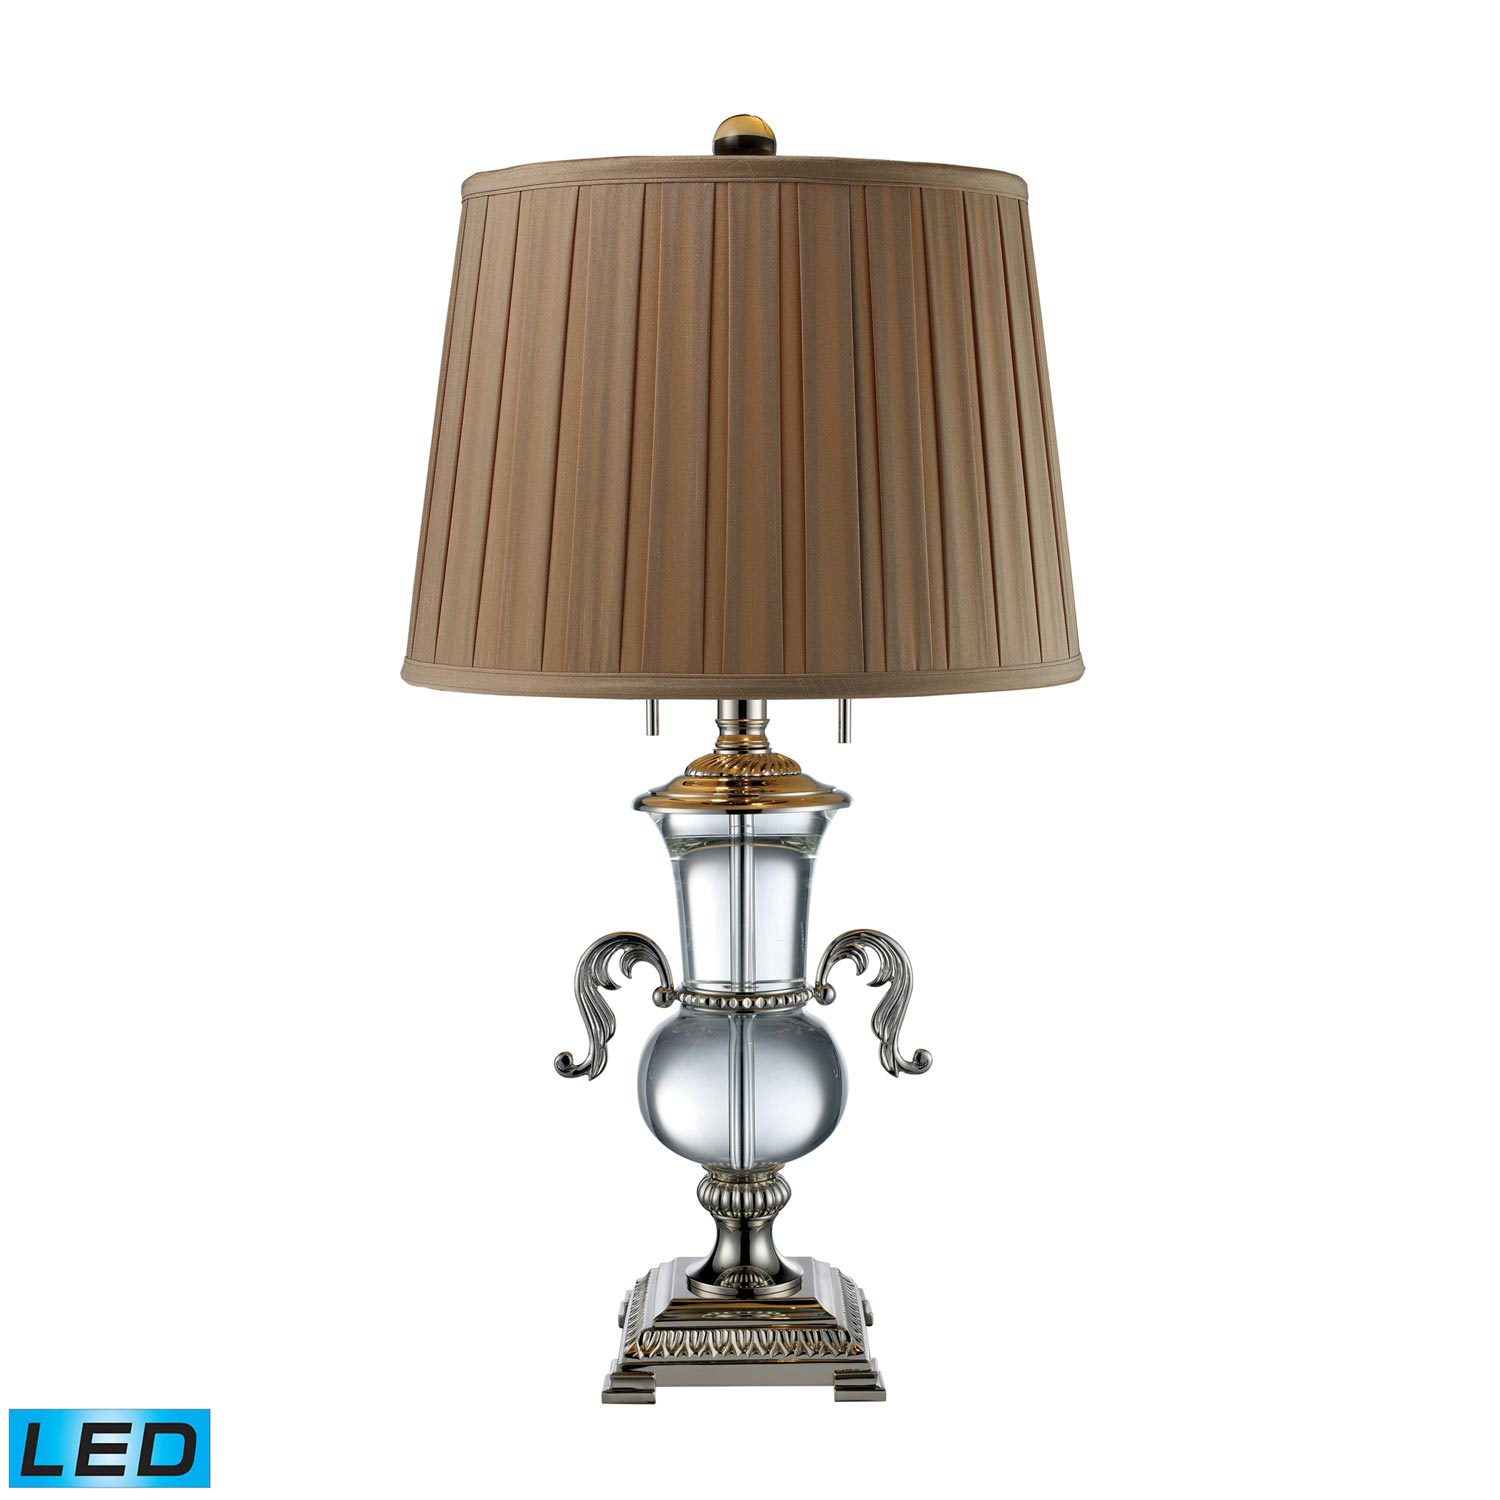 Elk Lighting D1810-LED Raven Table Lamp - Clear Crystal and Polished Nickel